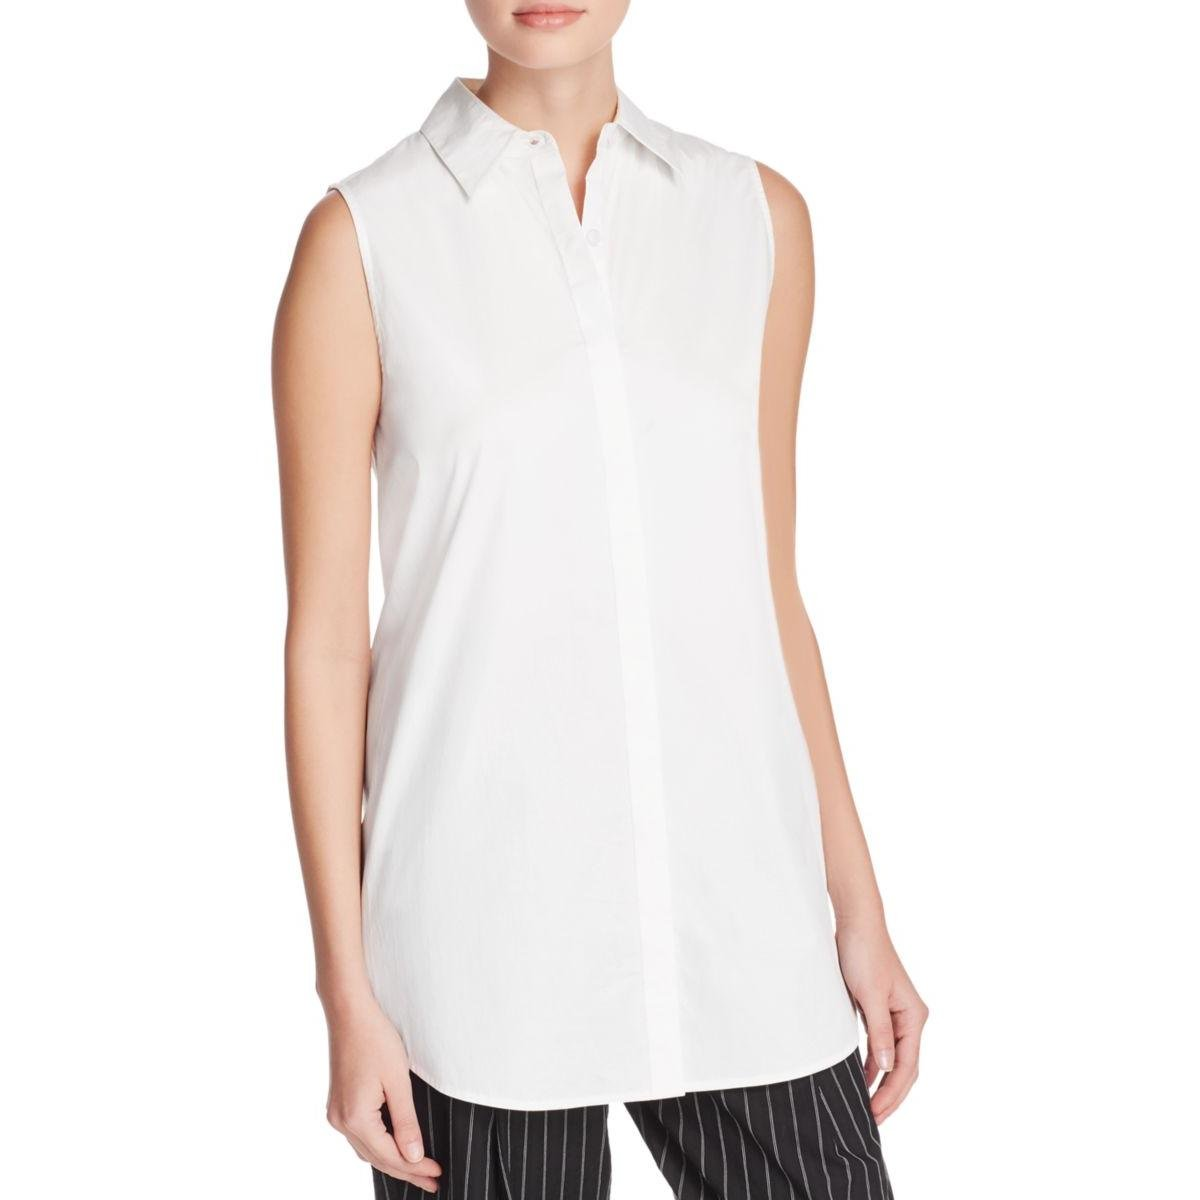 DKNY Womens Split Back Sleeveless Button-Down Top White L by DKNY (Image #1)